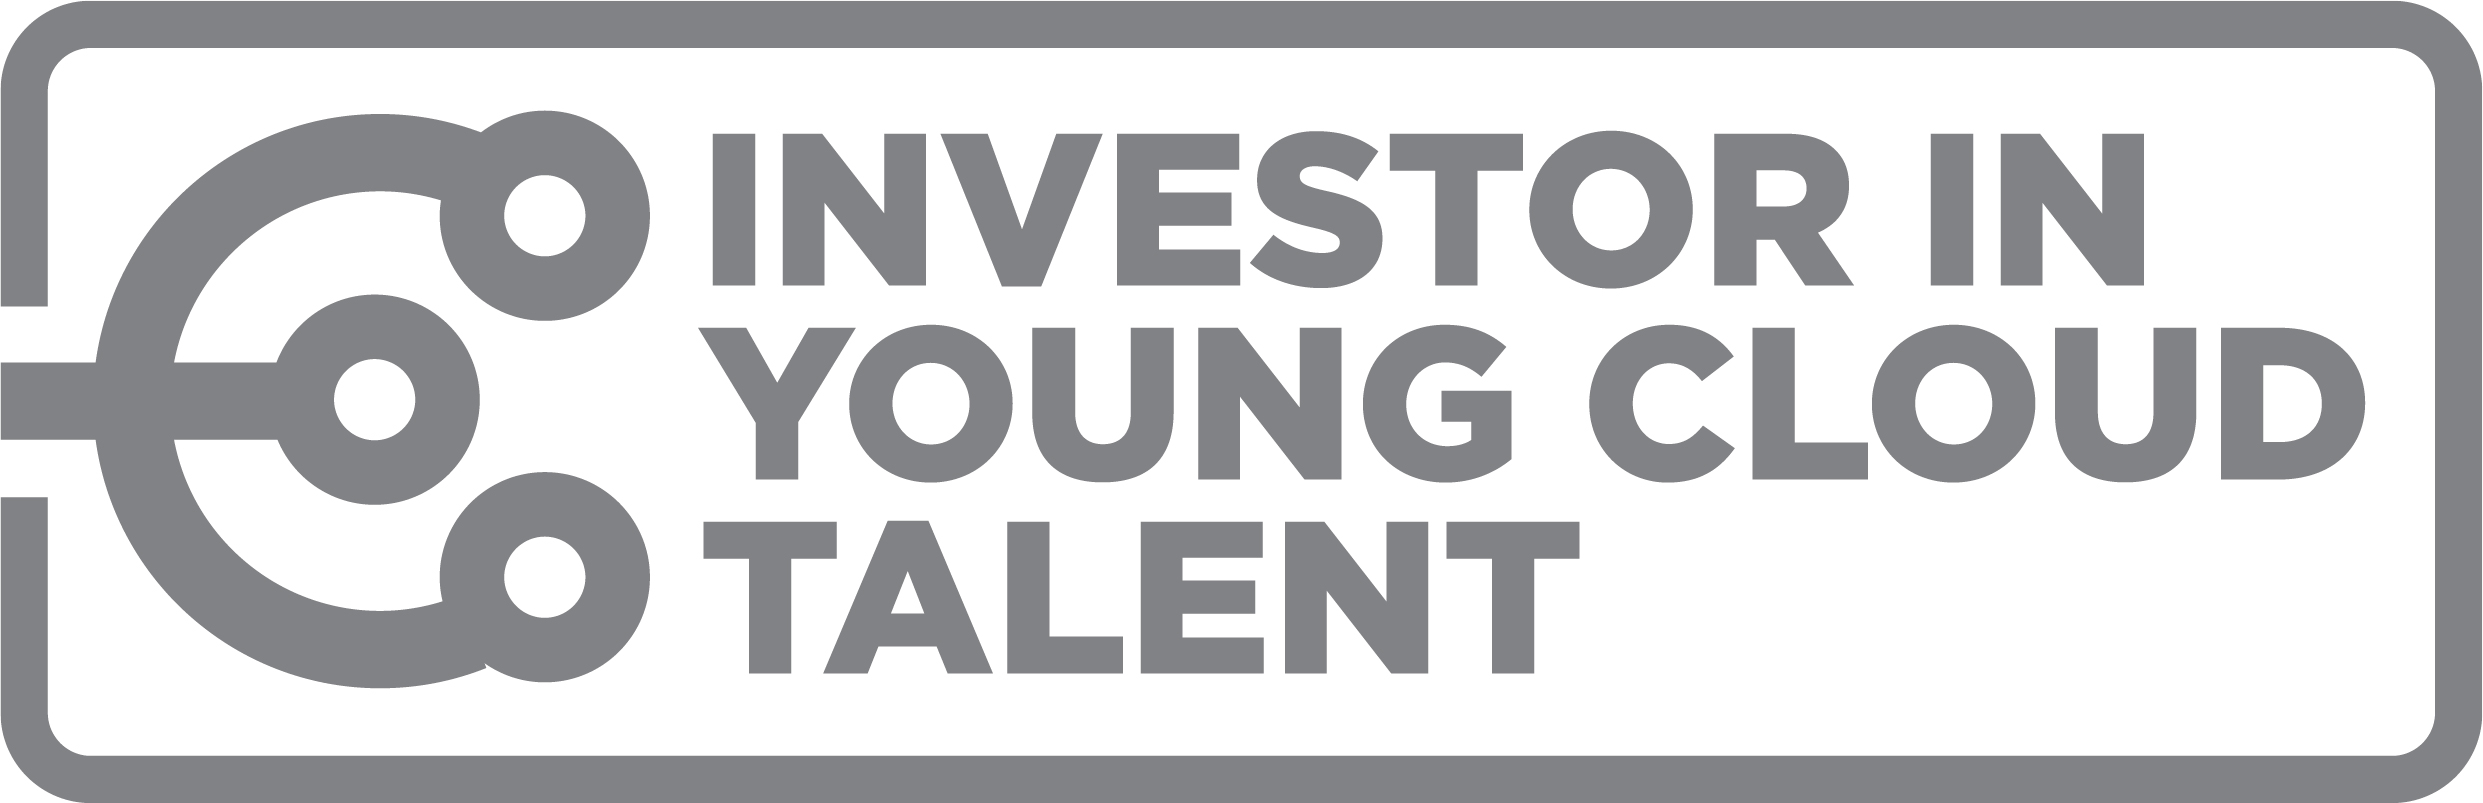 Investor in young cloud talent